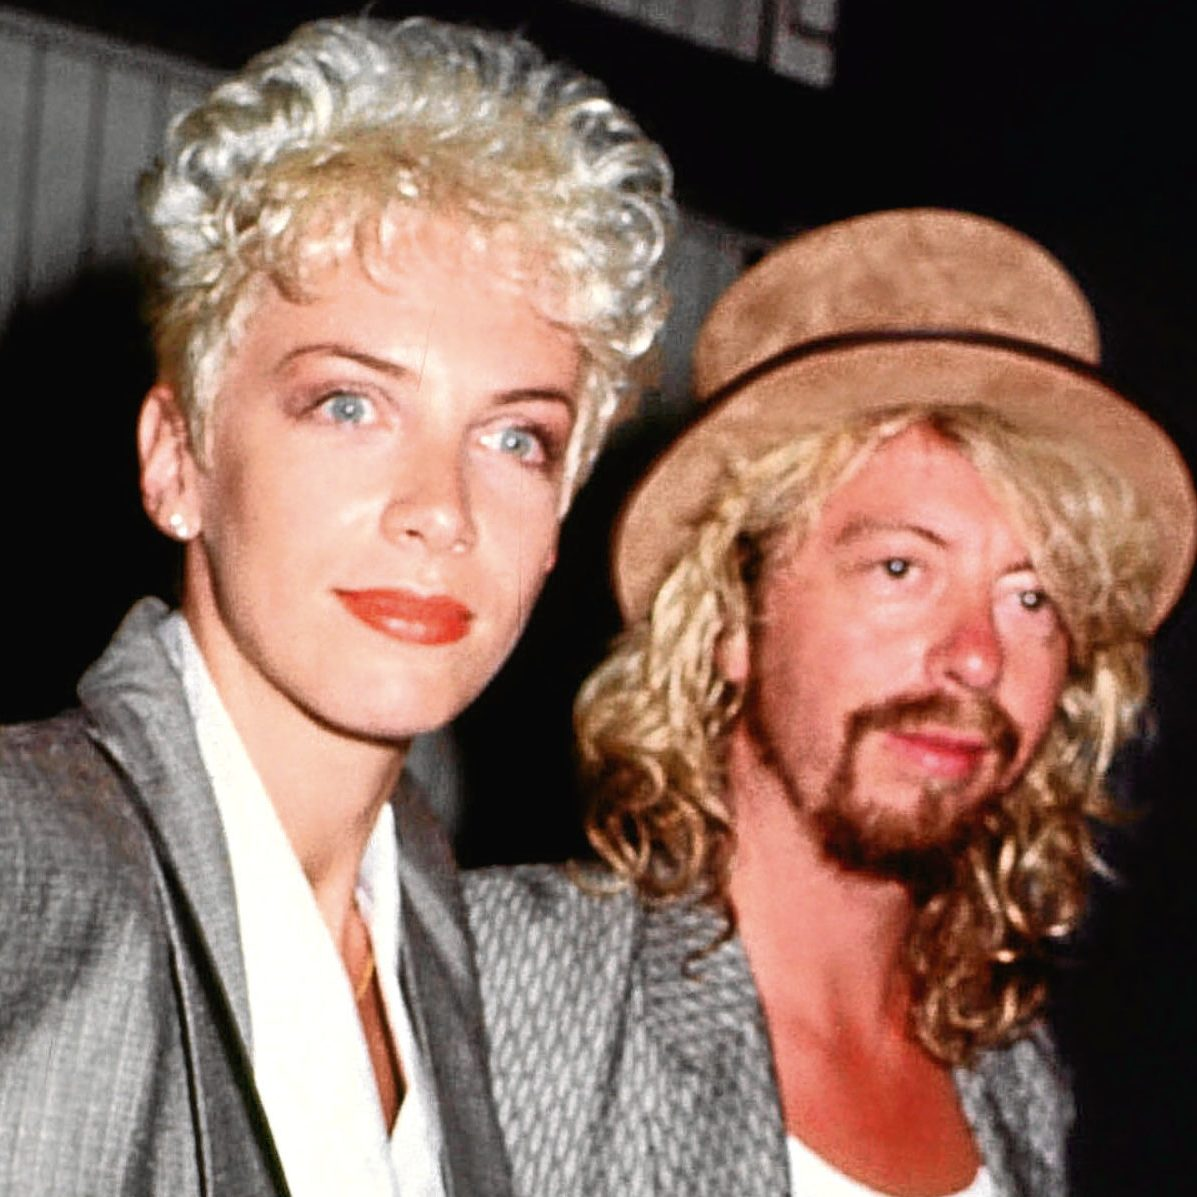 5a8eeef0c4bd3 e1574424742335 20 Sweet Facts About Pop Icons Eurythmics